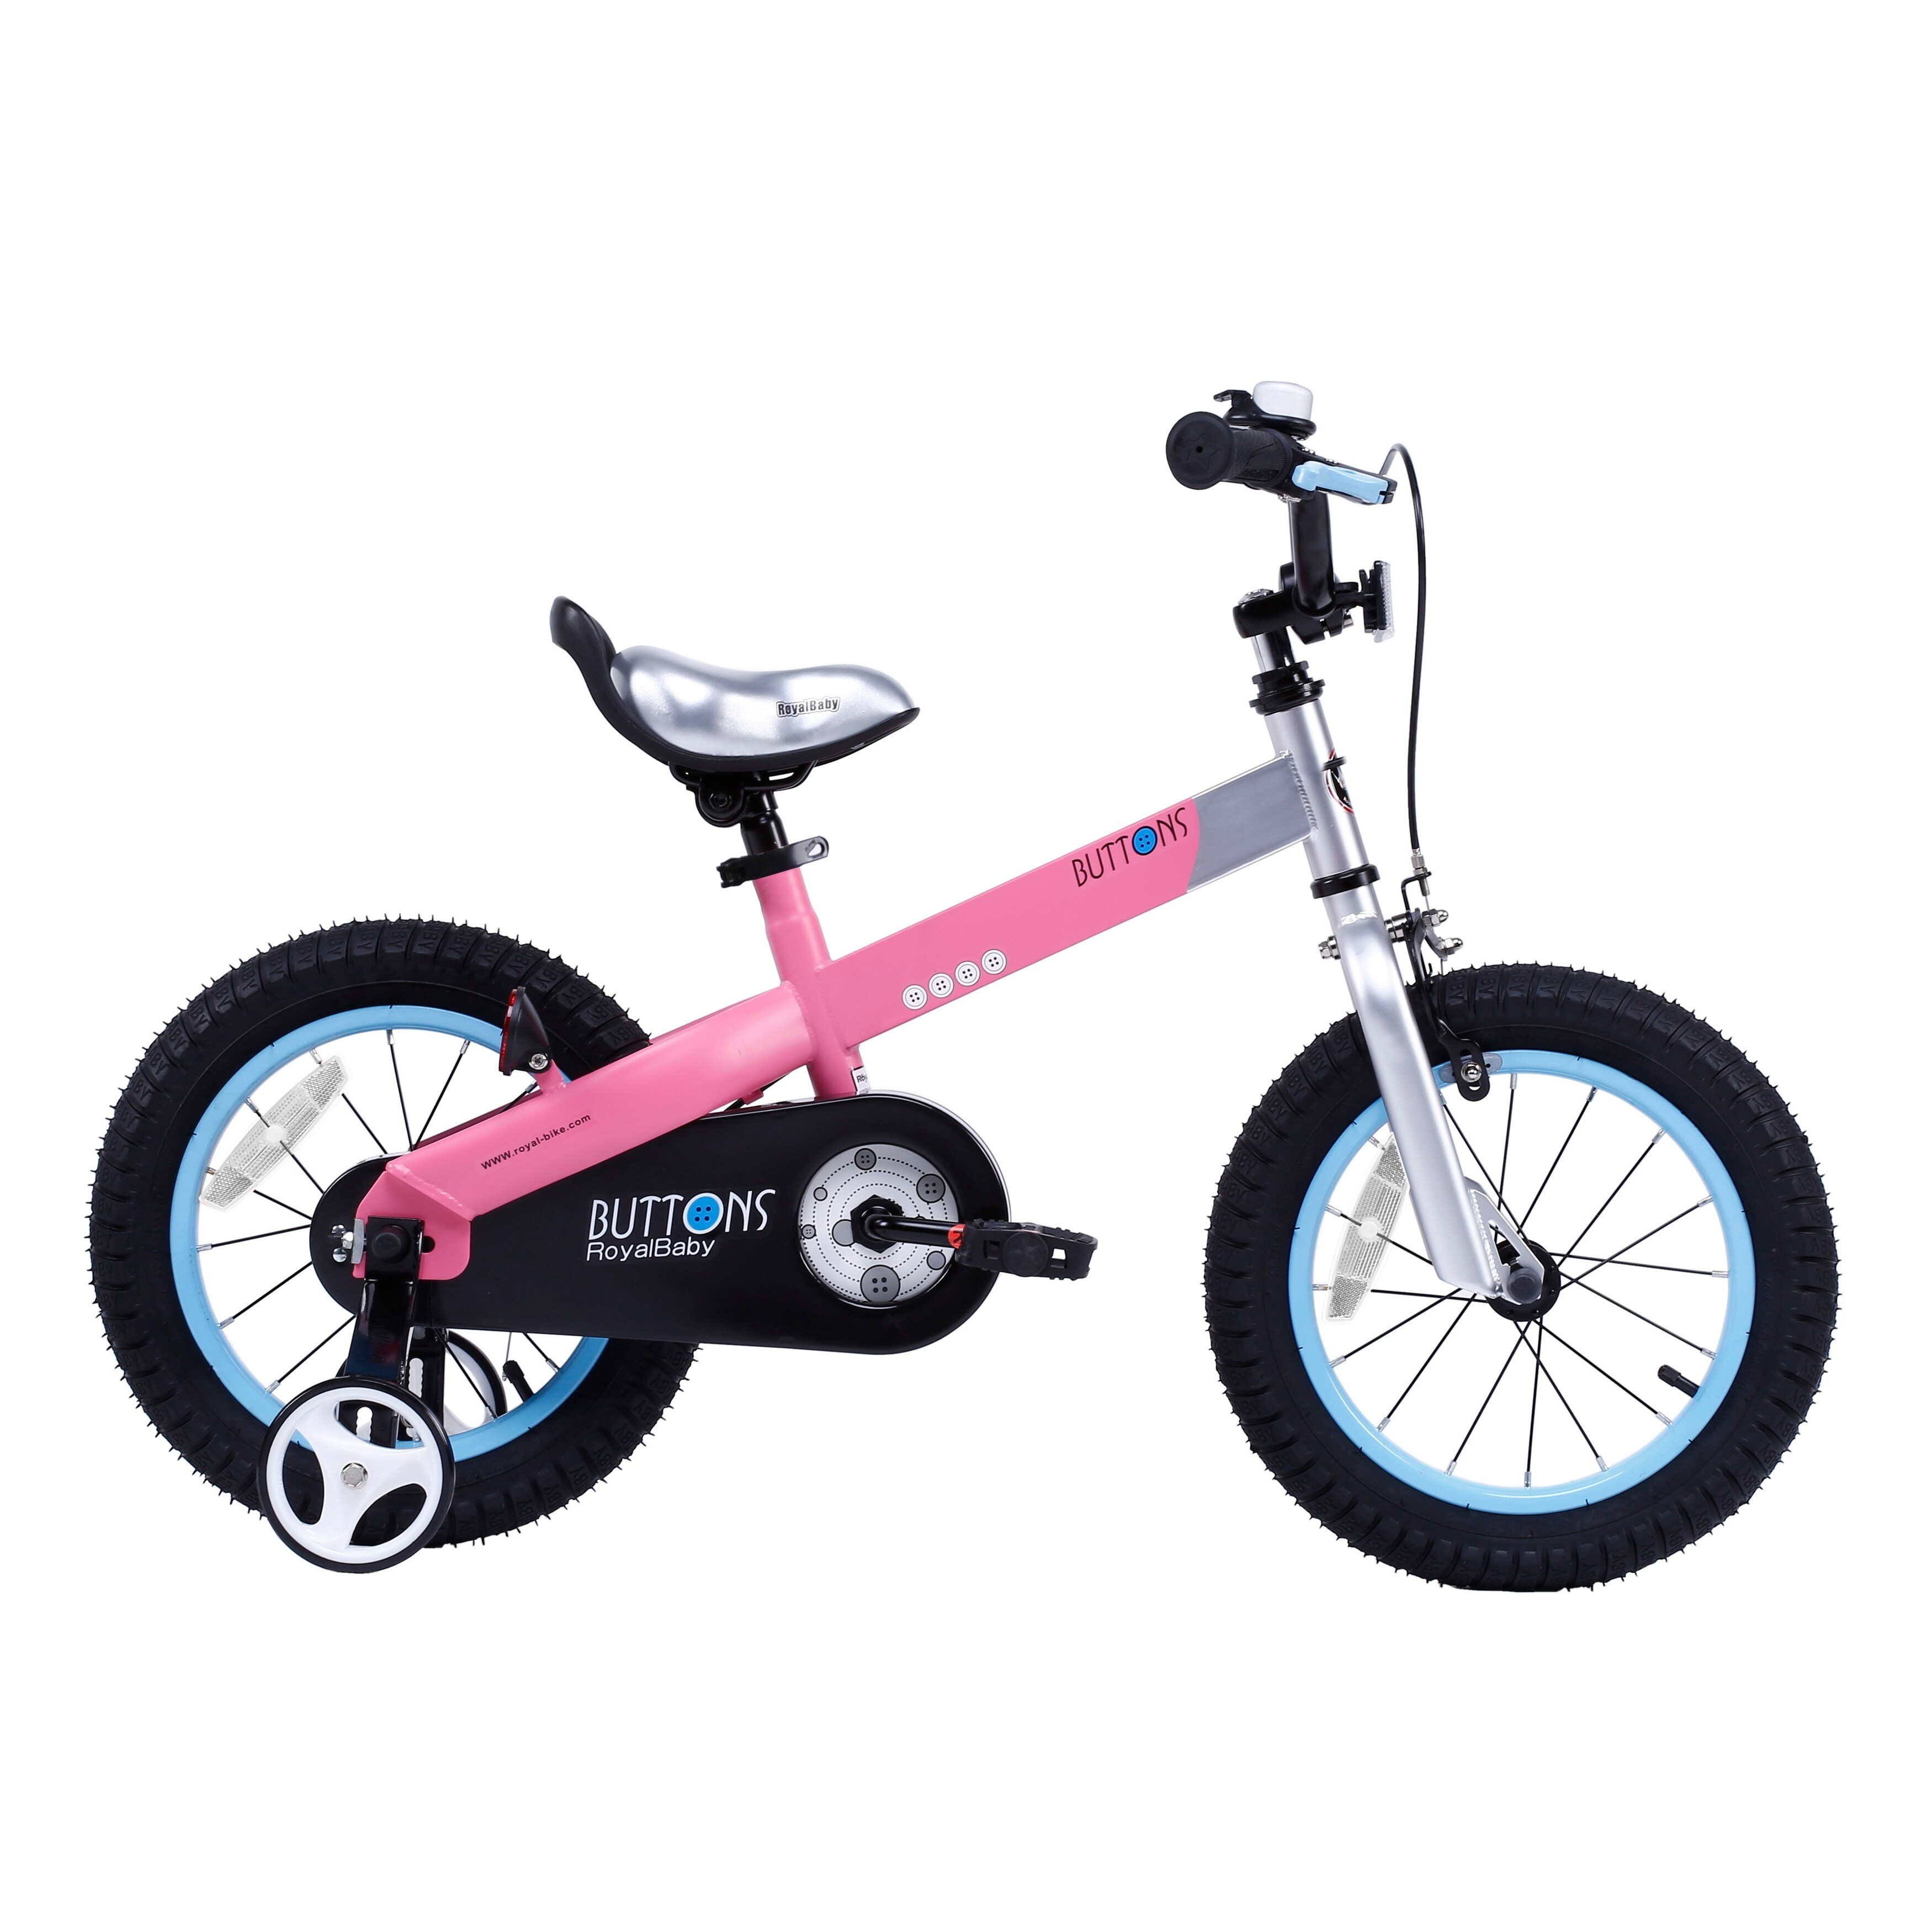 Royalbaby Matte Buttons 16 inch Kids Bike with Training Wheels 2643d1bc fe0c 4785 9302 30b450251efa 1